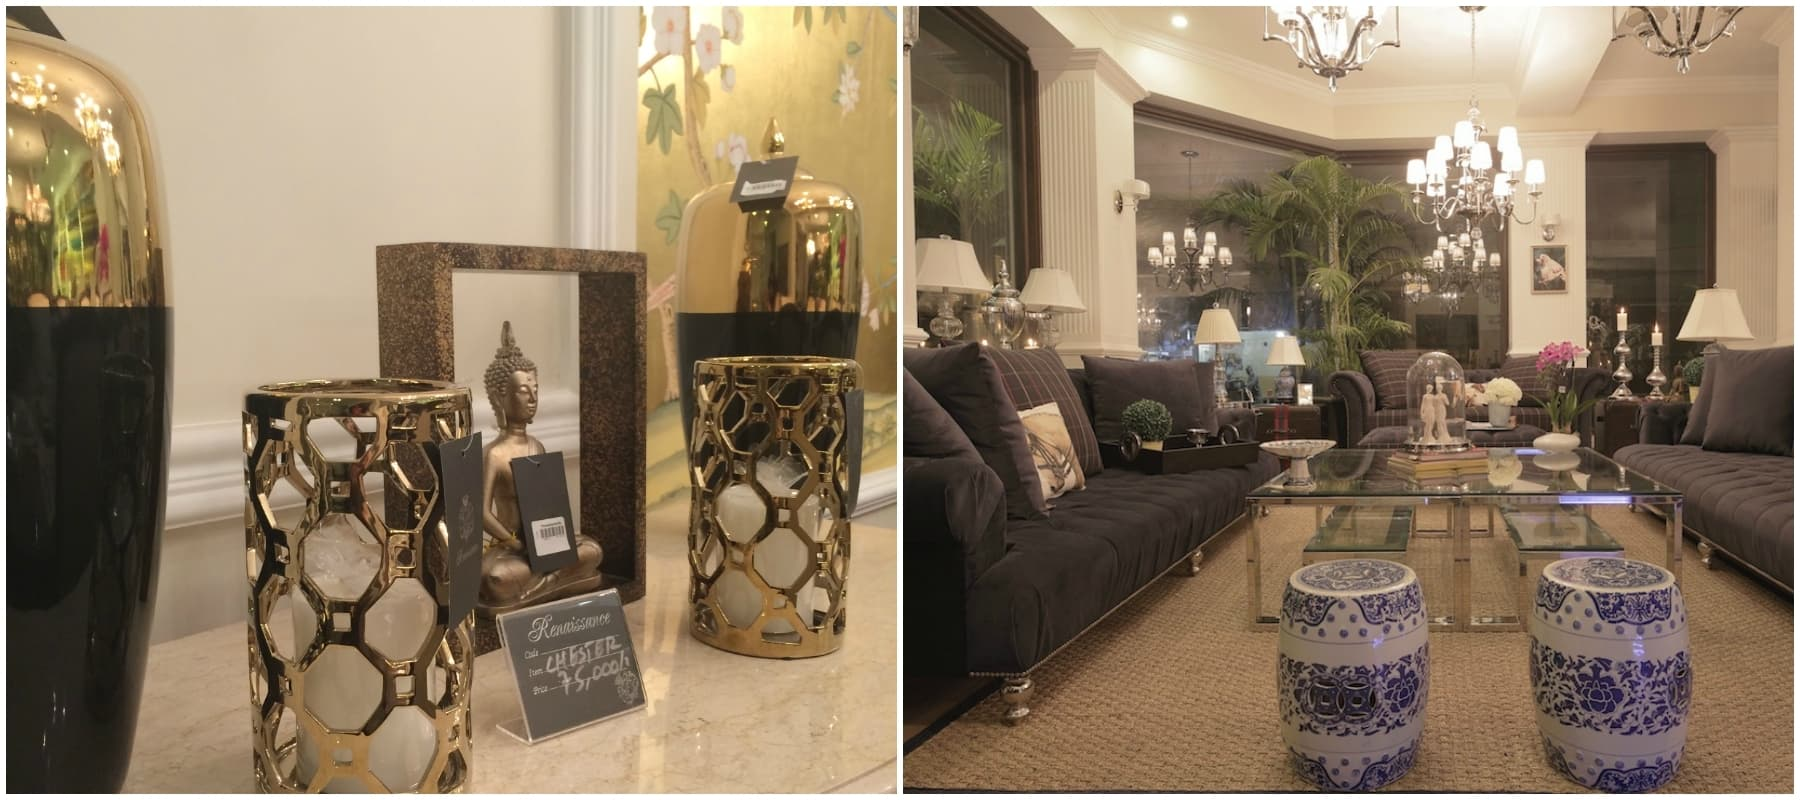 Best Home Decor Stores Top Picks For Home Decor These 10 Stores Get Interiors